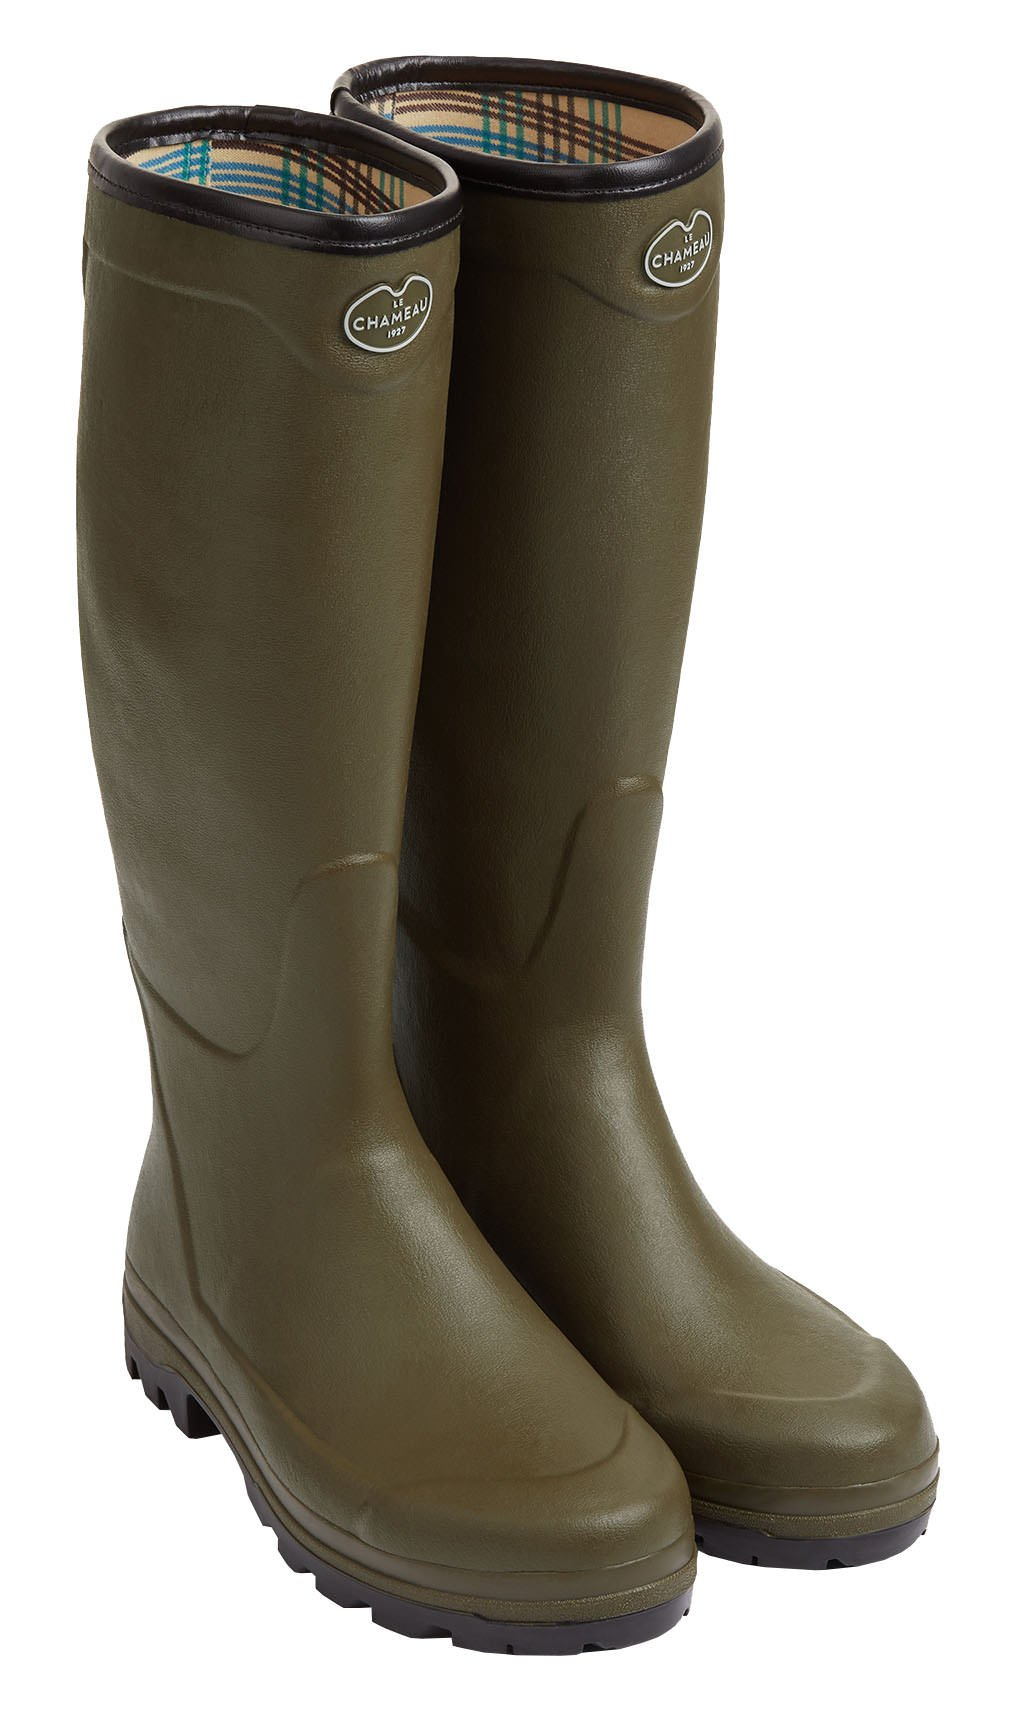 LE CHAMEAU 1927 Men's Country XL Jersey Lined Boot Country XL - US 11